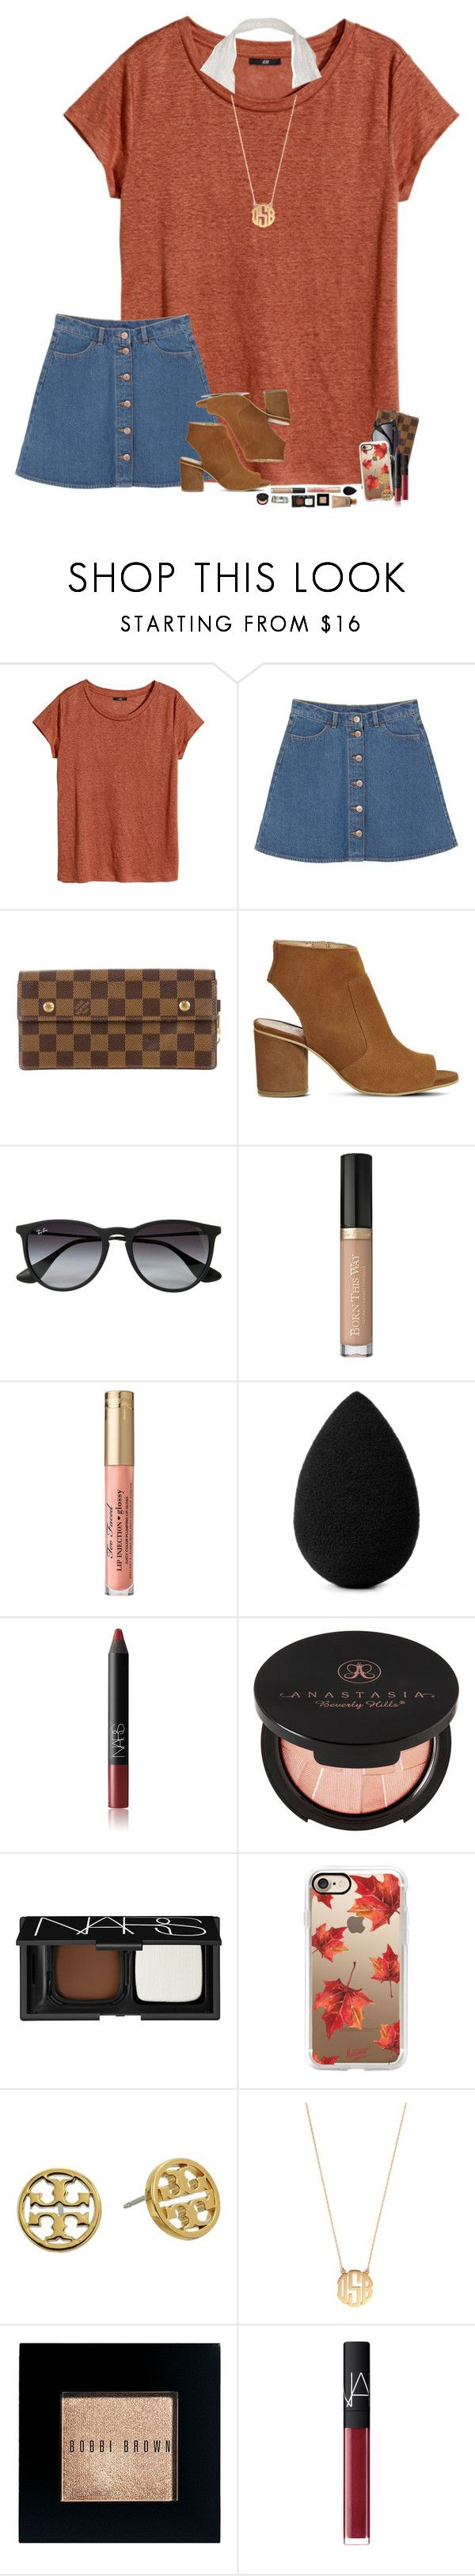 """@sassysouthernprep99 is coming over soon!"" by hopemarlee ❤ liked on Polyvore featuring H&M, Monki, Louis Vuitton, Office, Ray-Ban, beautyblender, NARS Cosmetics, Anastasia Beverly Hills, Casetify and Tory Burch"